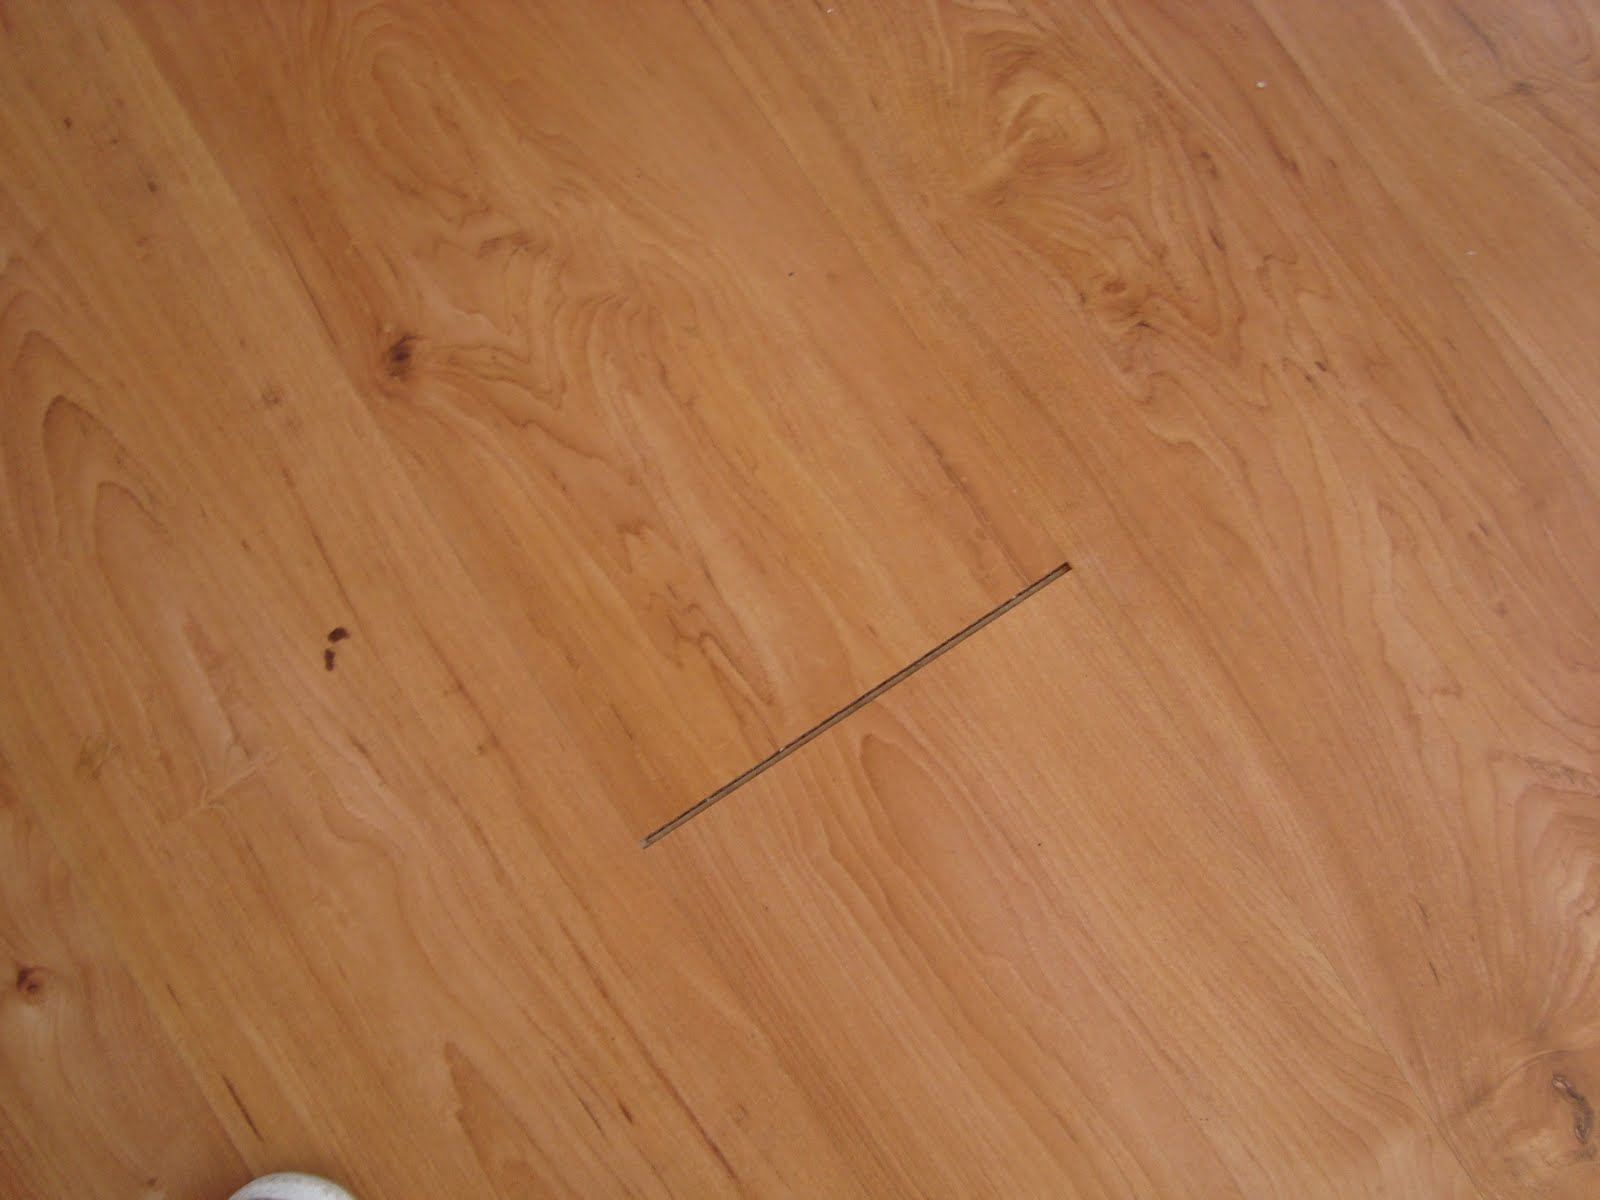 How to fix gaps in laminate flooring